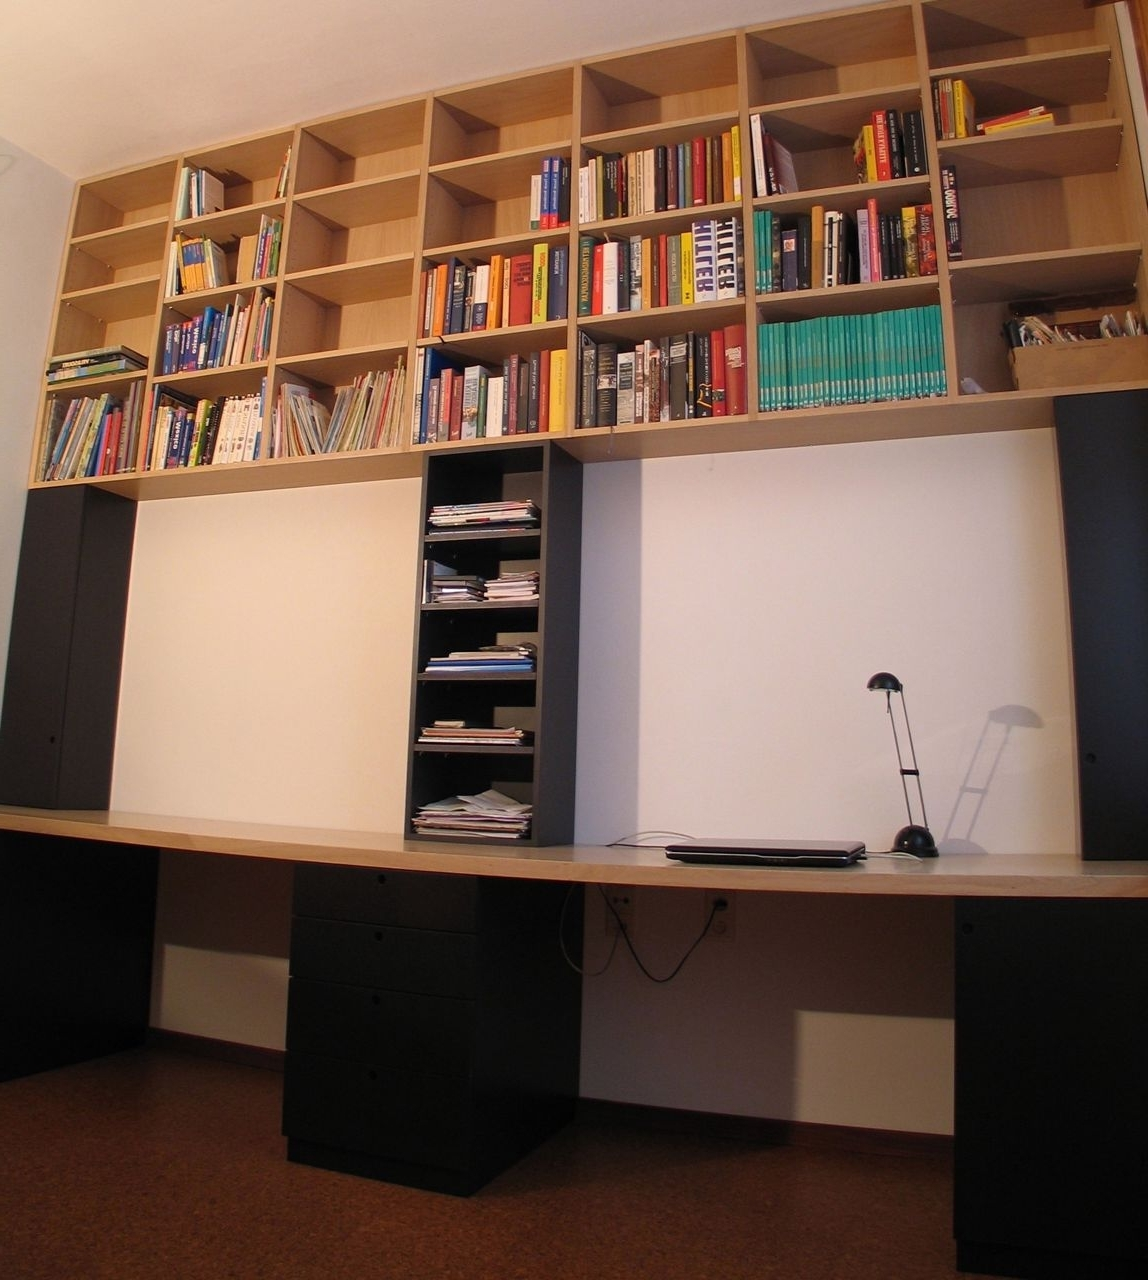 Newest Bookcases Ideas: Desk Bookcase Combo Simple Design Bookcase With Throughout High Quality Bookcases (View 13 of 15)